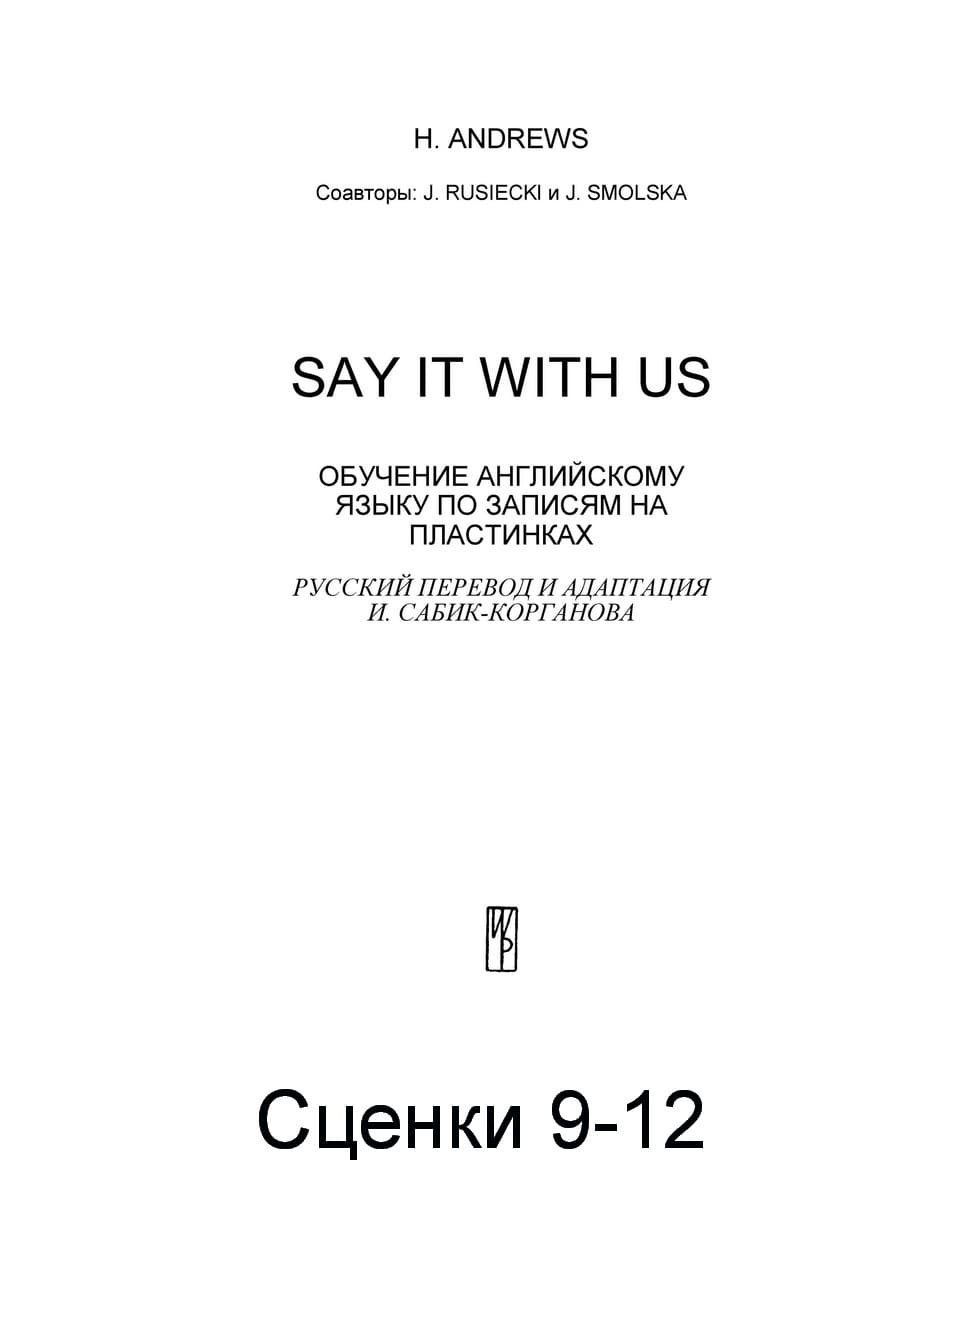 Say It With Us 09-12